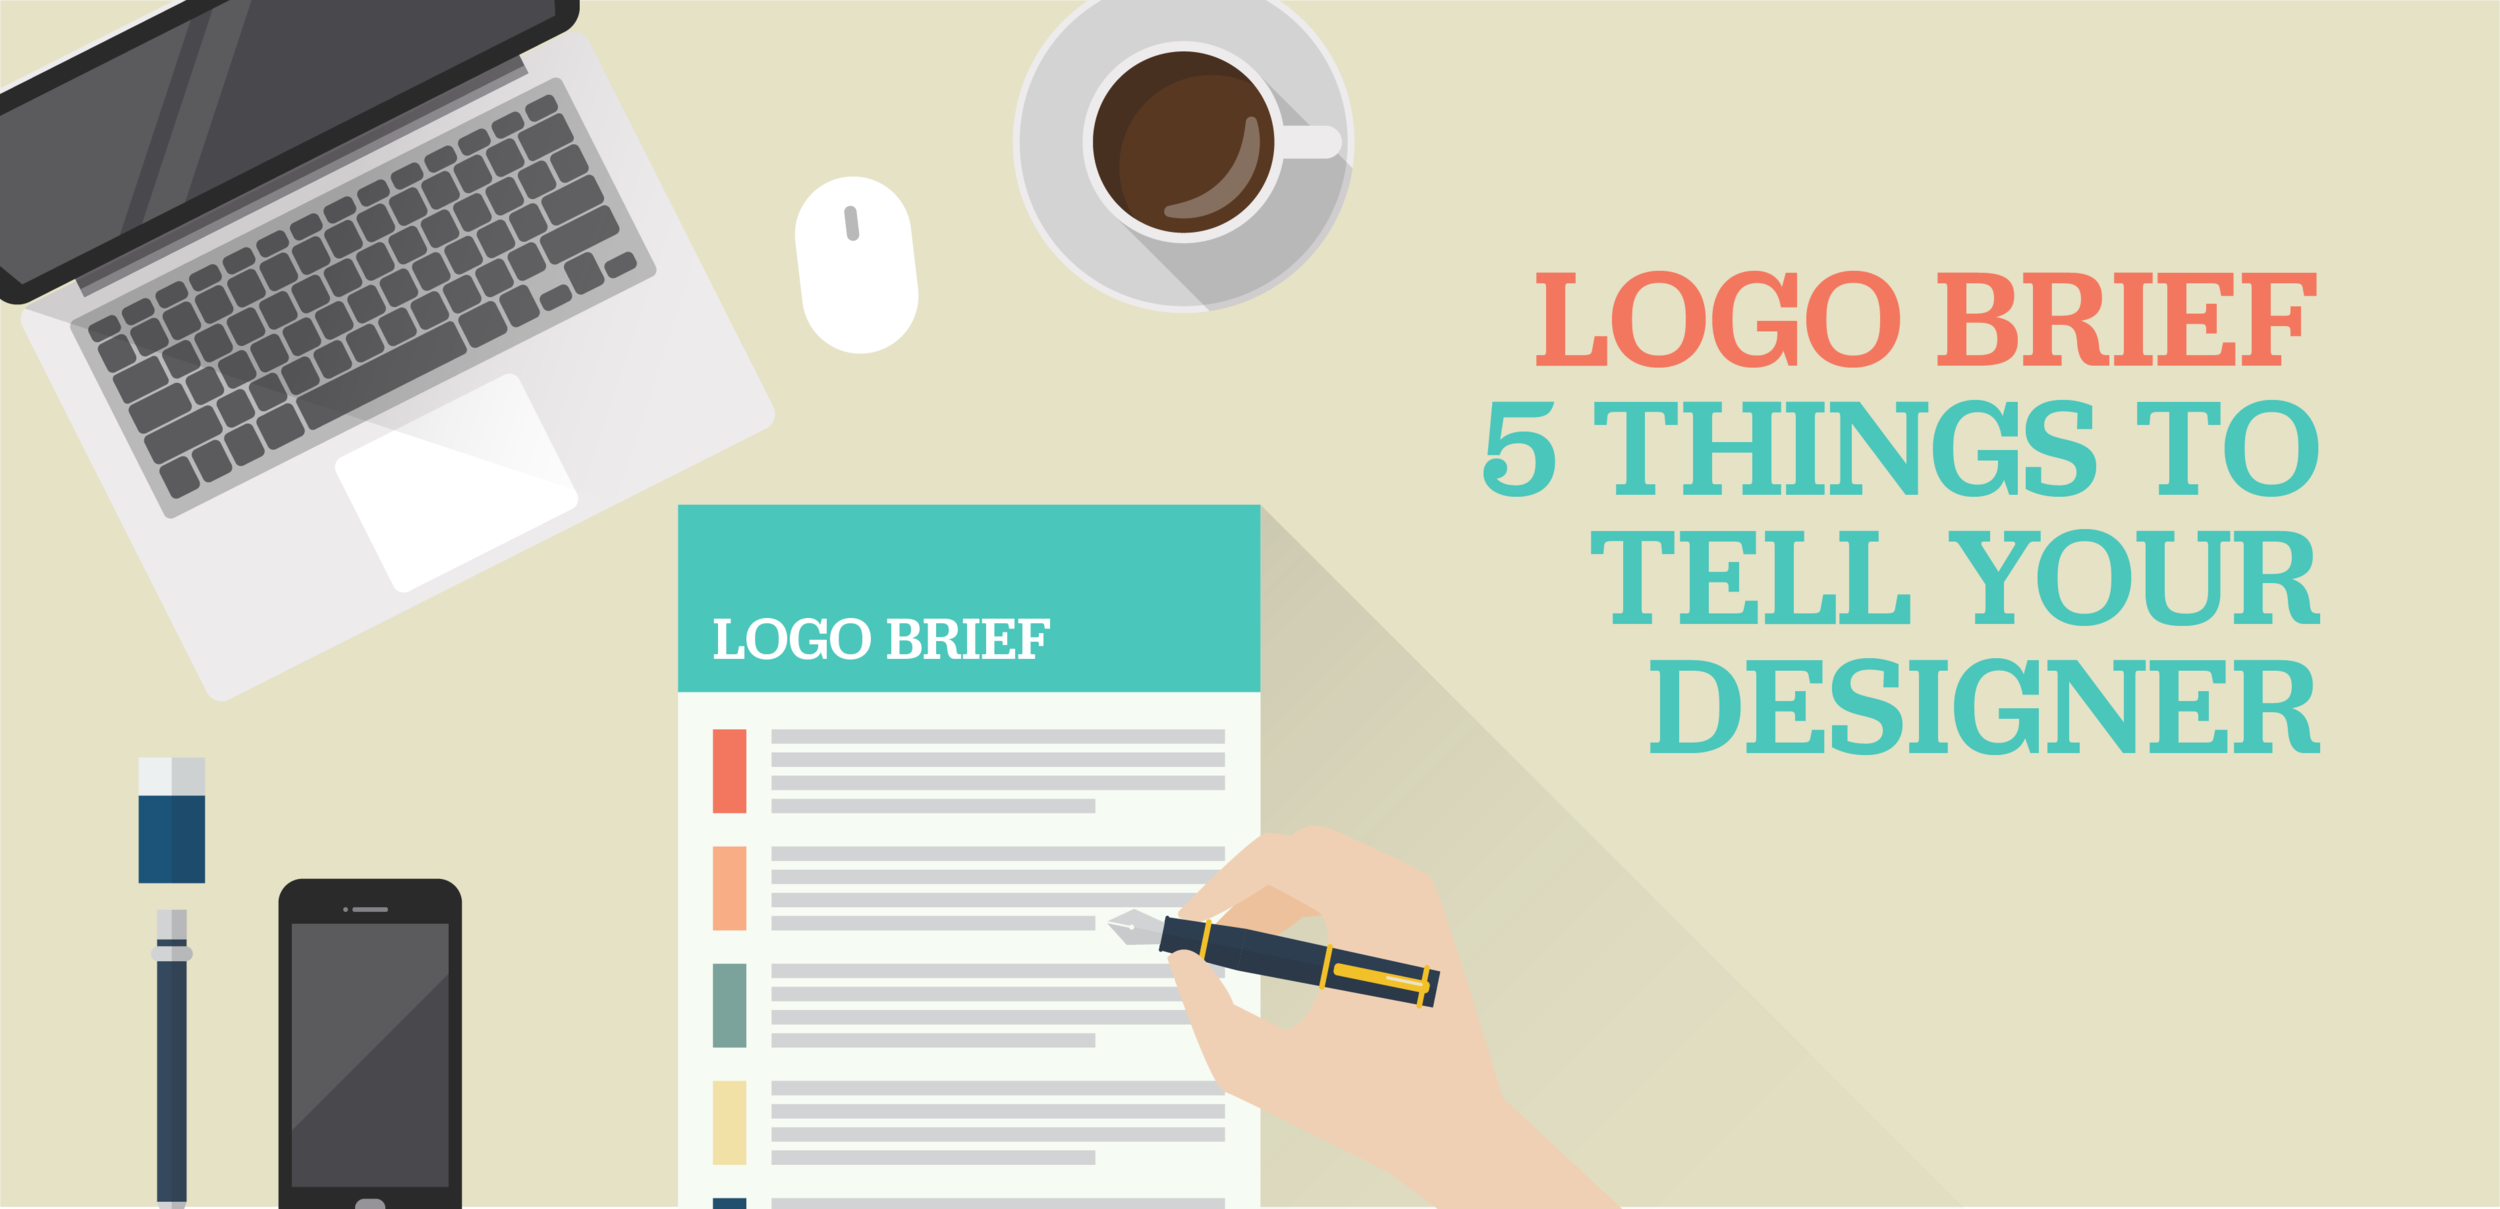 Read more about how to get started with a logo brief (includes FREE design brief template)